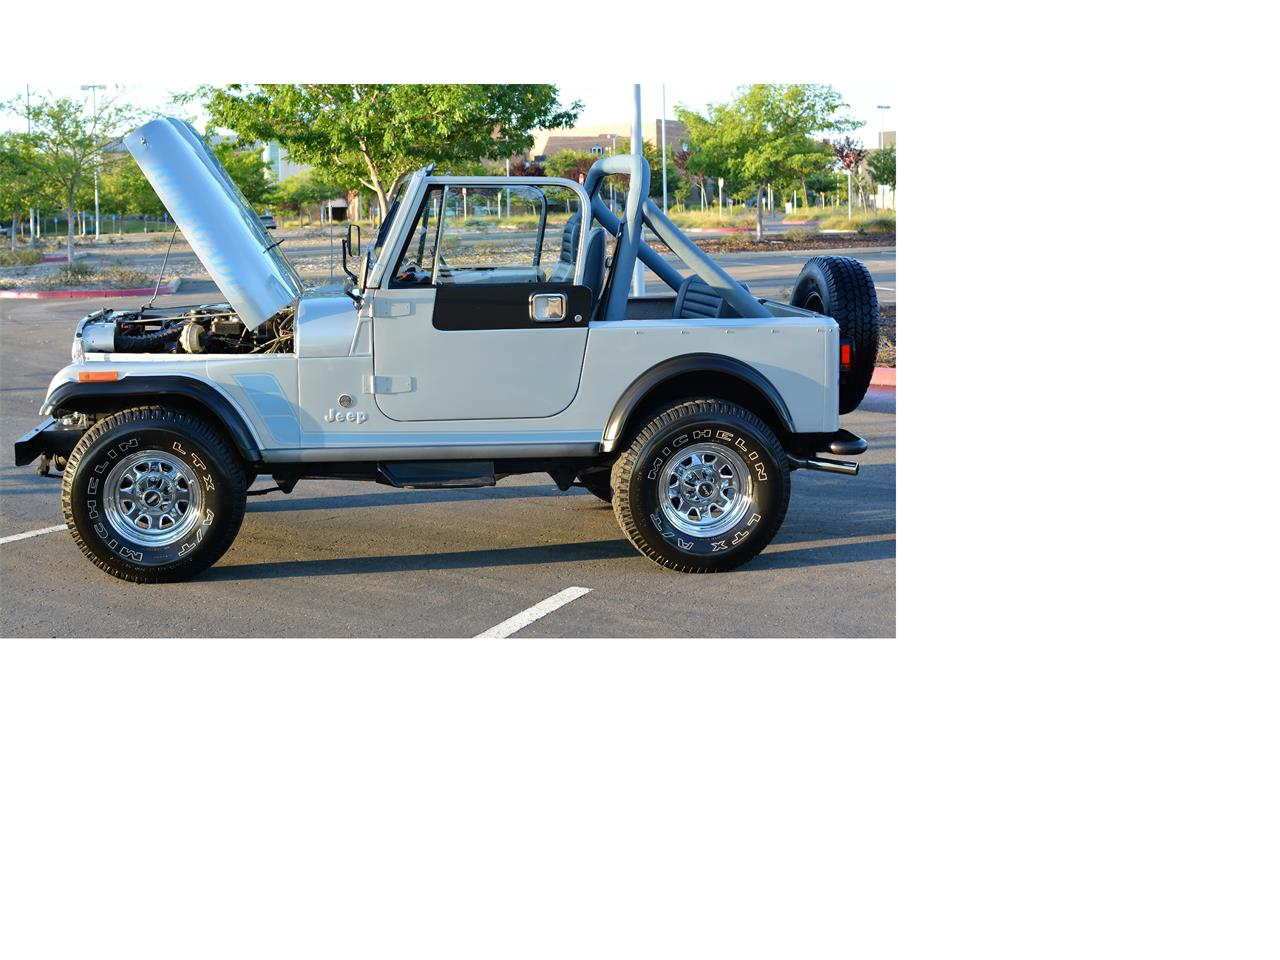 Large Picture of 1983 Jeep Wrangler located in Folsom California - $17,500.00 - LHRY